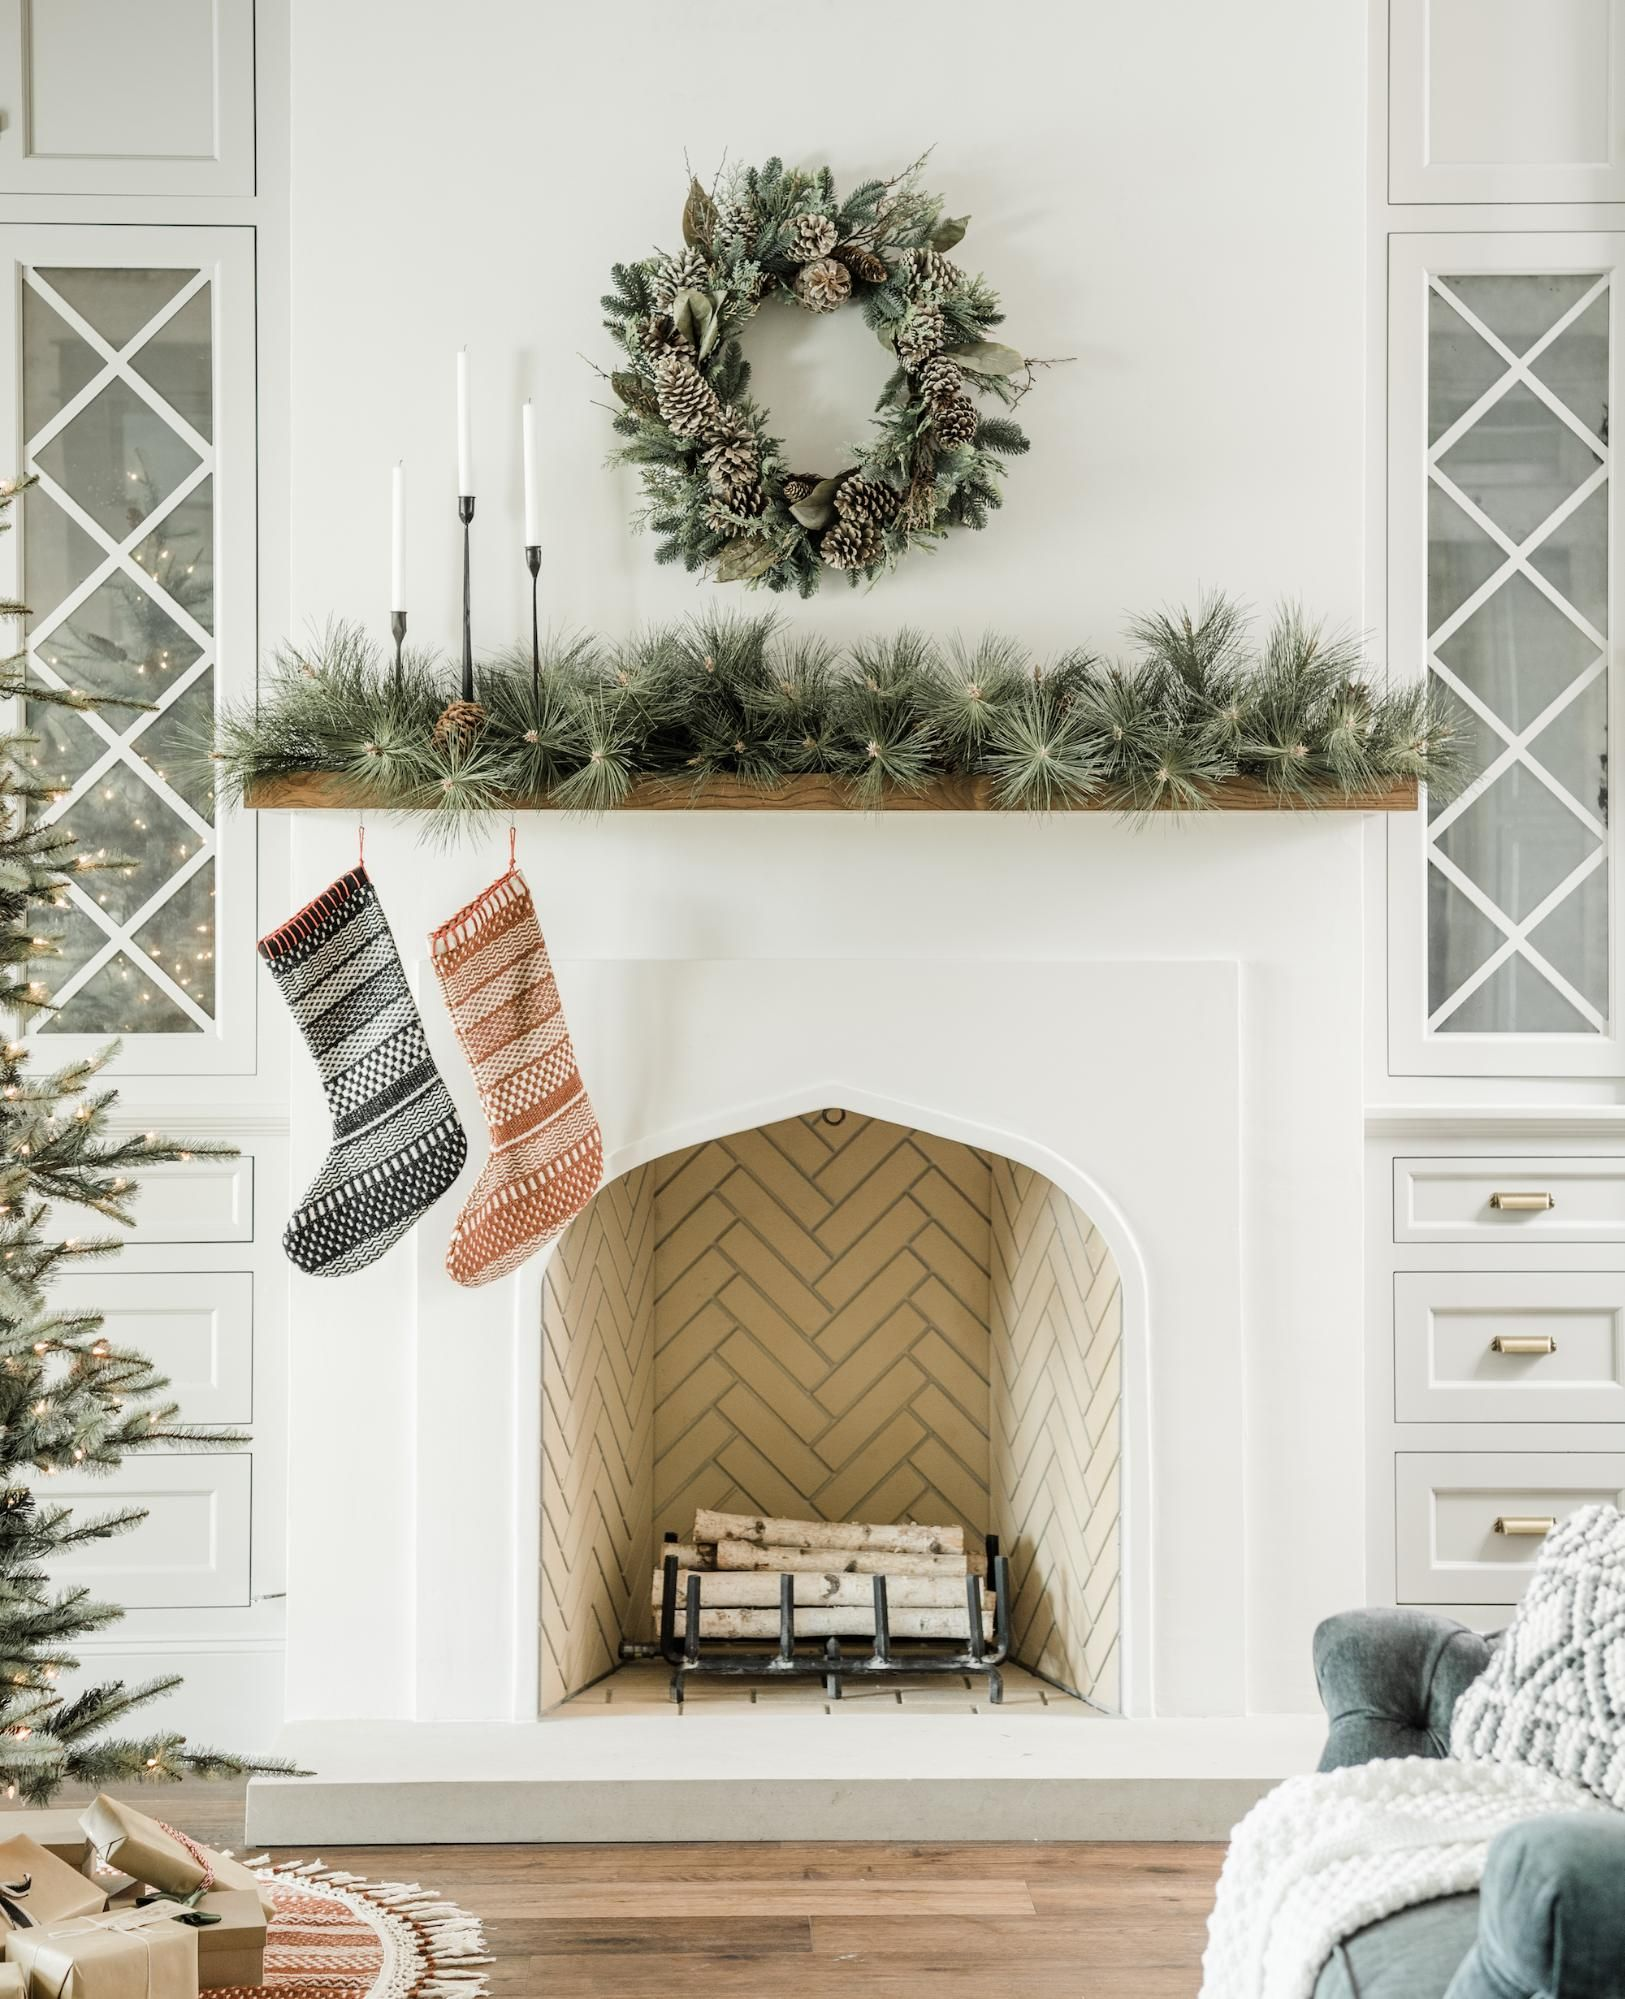 How To Decorate With Garland Magnolia Christmas Mantel Decorations Christmas Mantle Decor Christmas Fireplace Decor